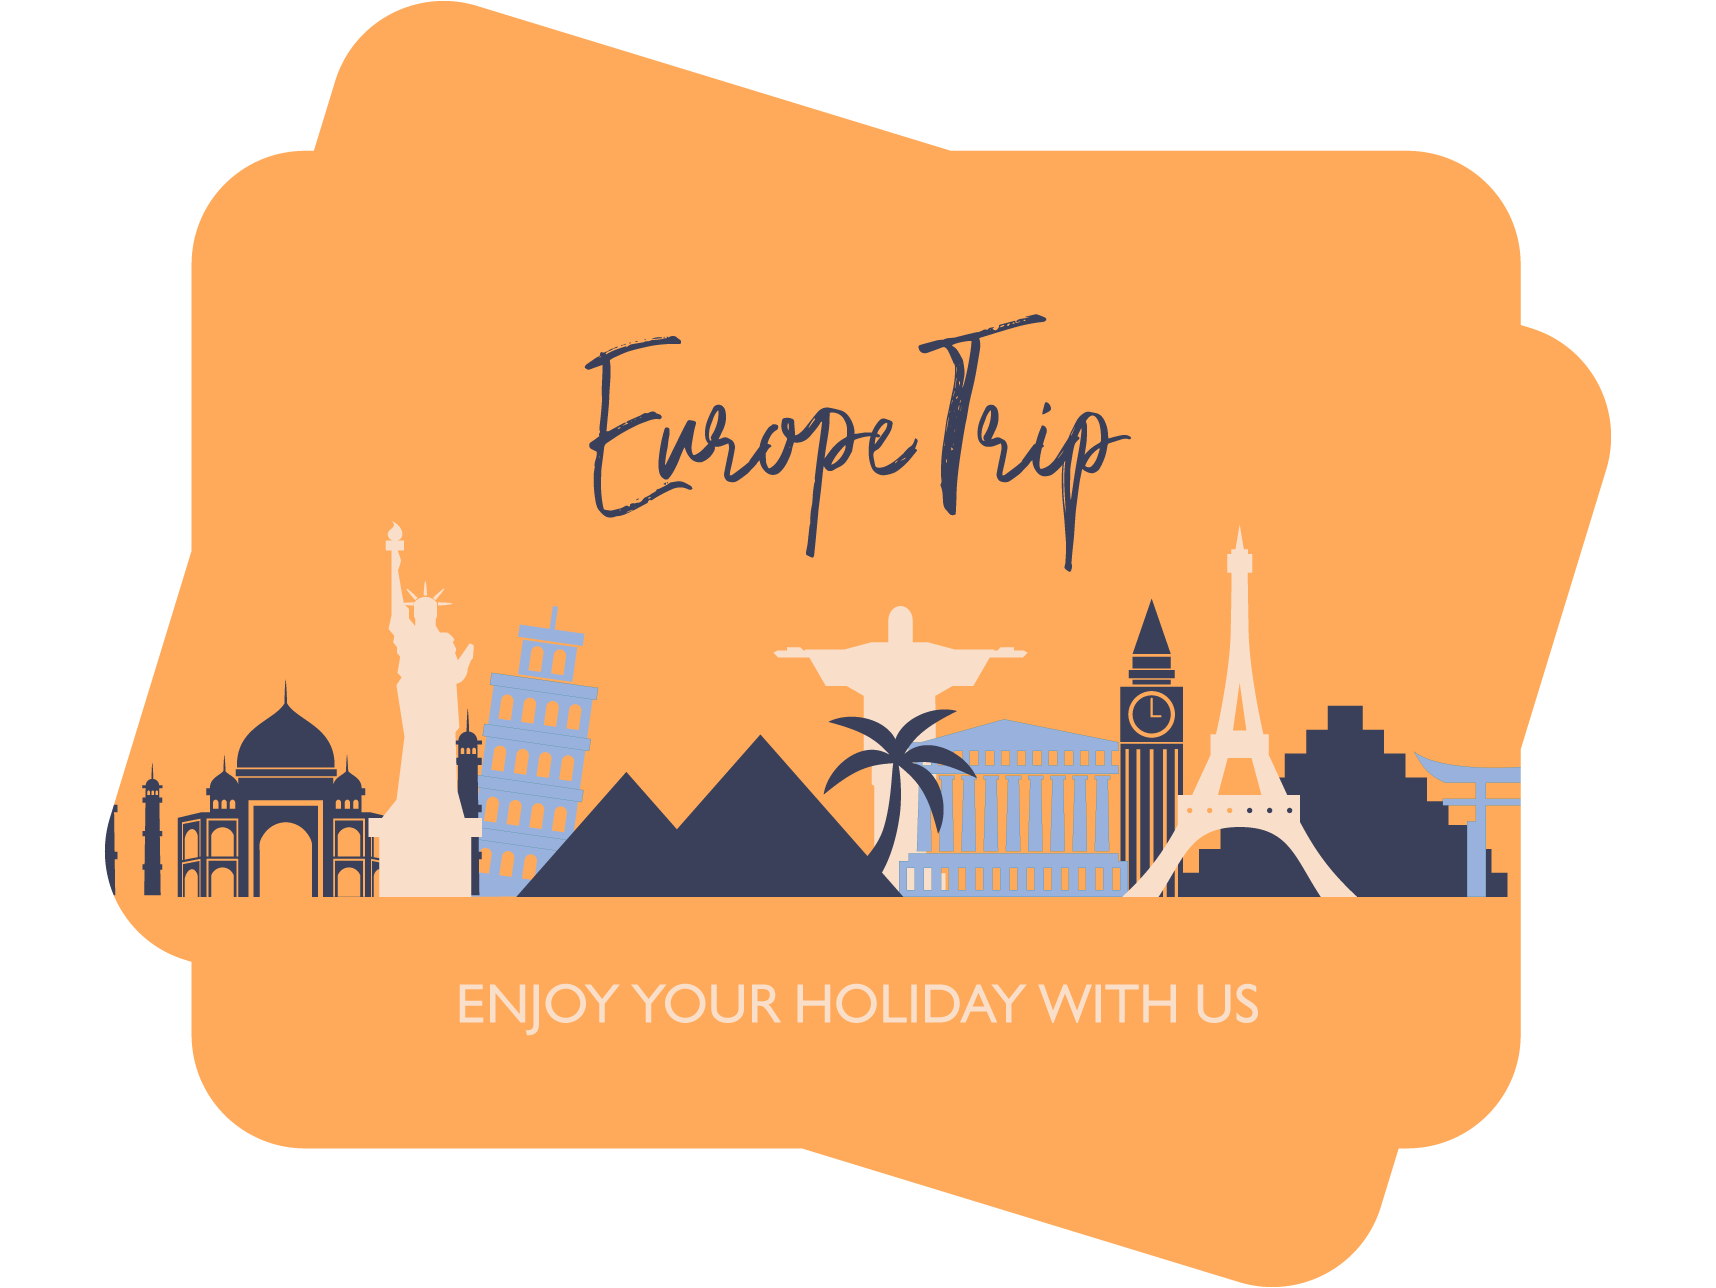 europe trip, enjoy your holidays with us tour agency card template